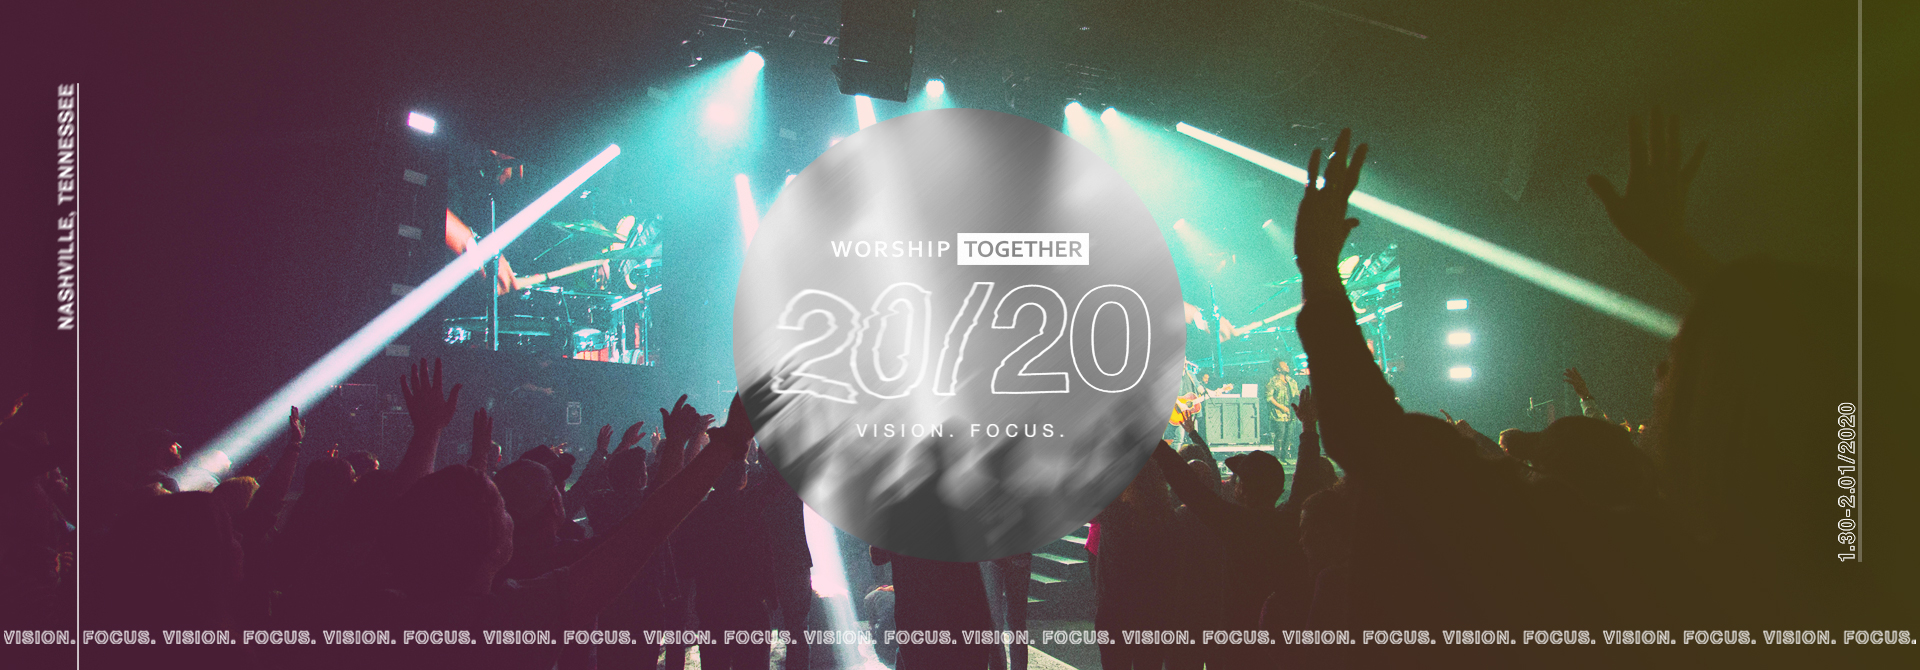 Events Franklin Tn May 2020.Worship Together 2020 Conference